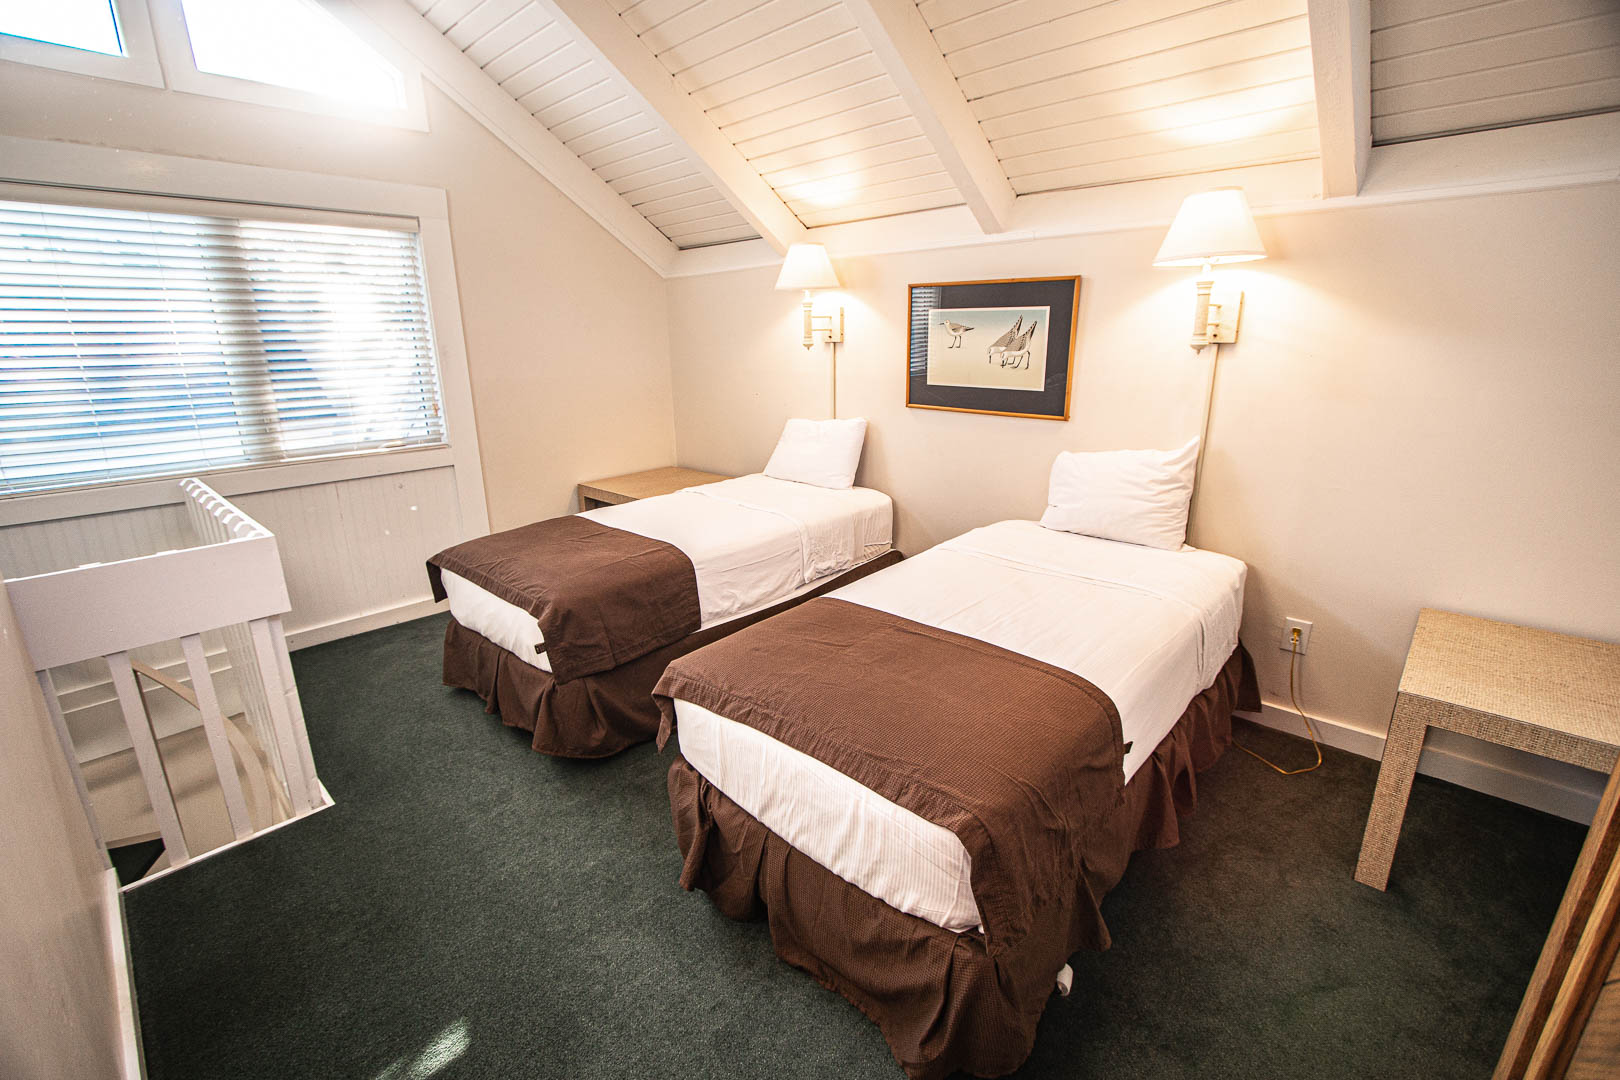 A two bedroom with double beds at VRI's Waterwood Townhomes in New Bern, North Carolina.